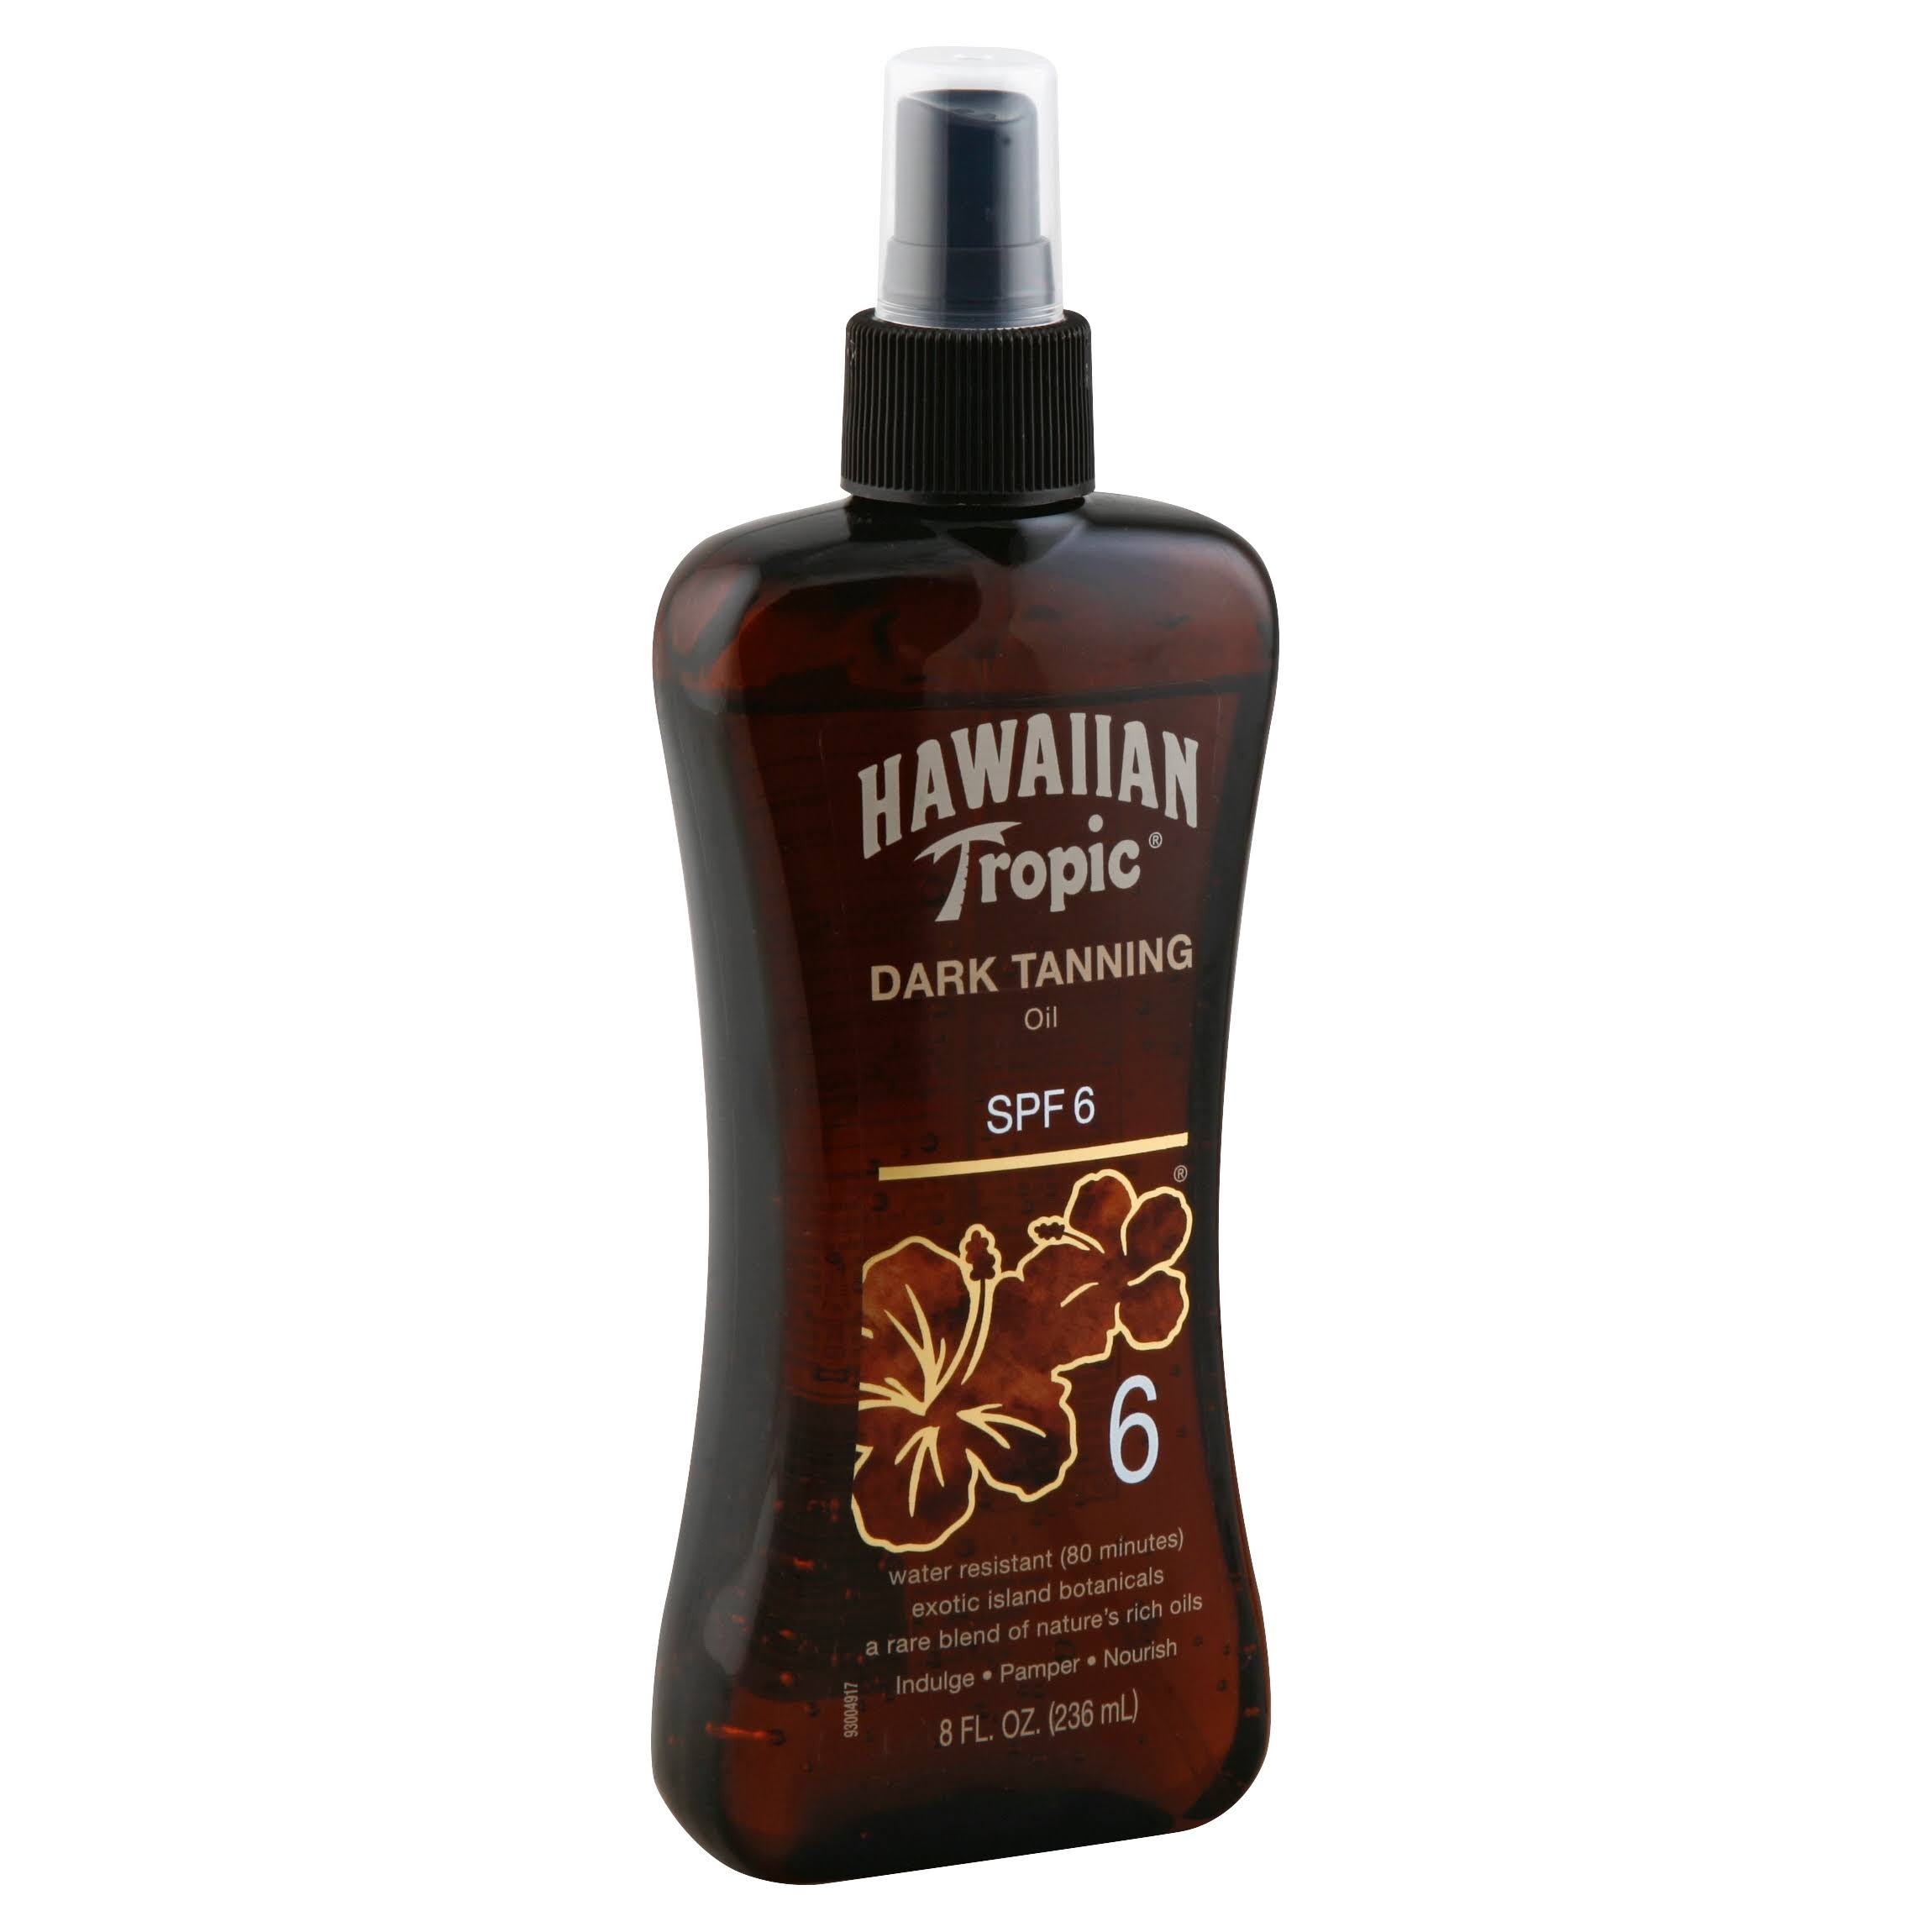 Hawaiian Tropic Dark Tanning Oil - SPF 6, 8oz